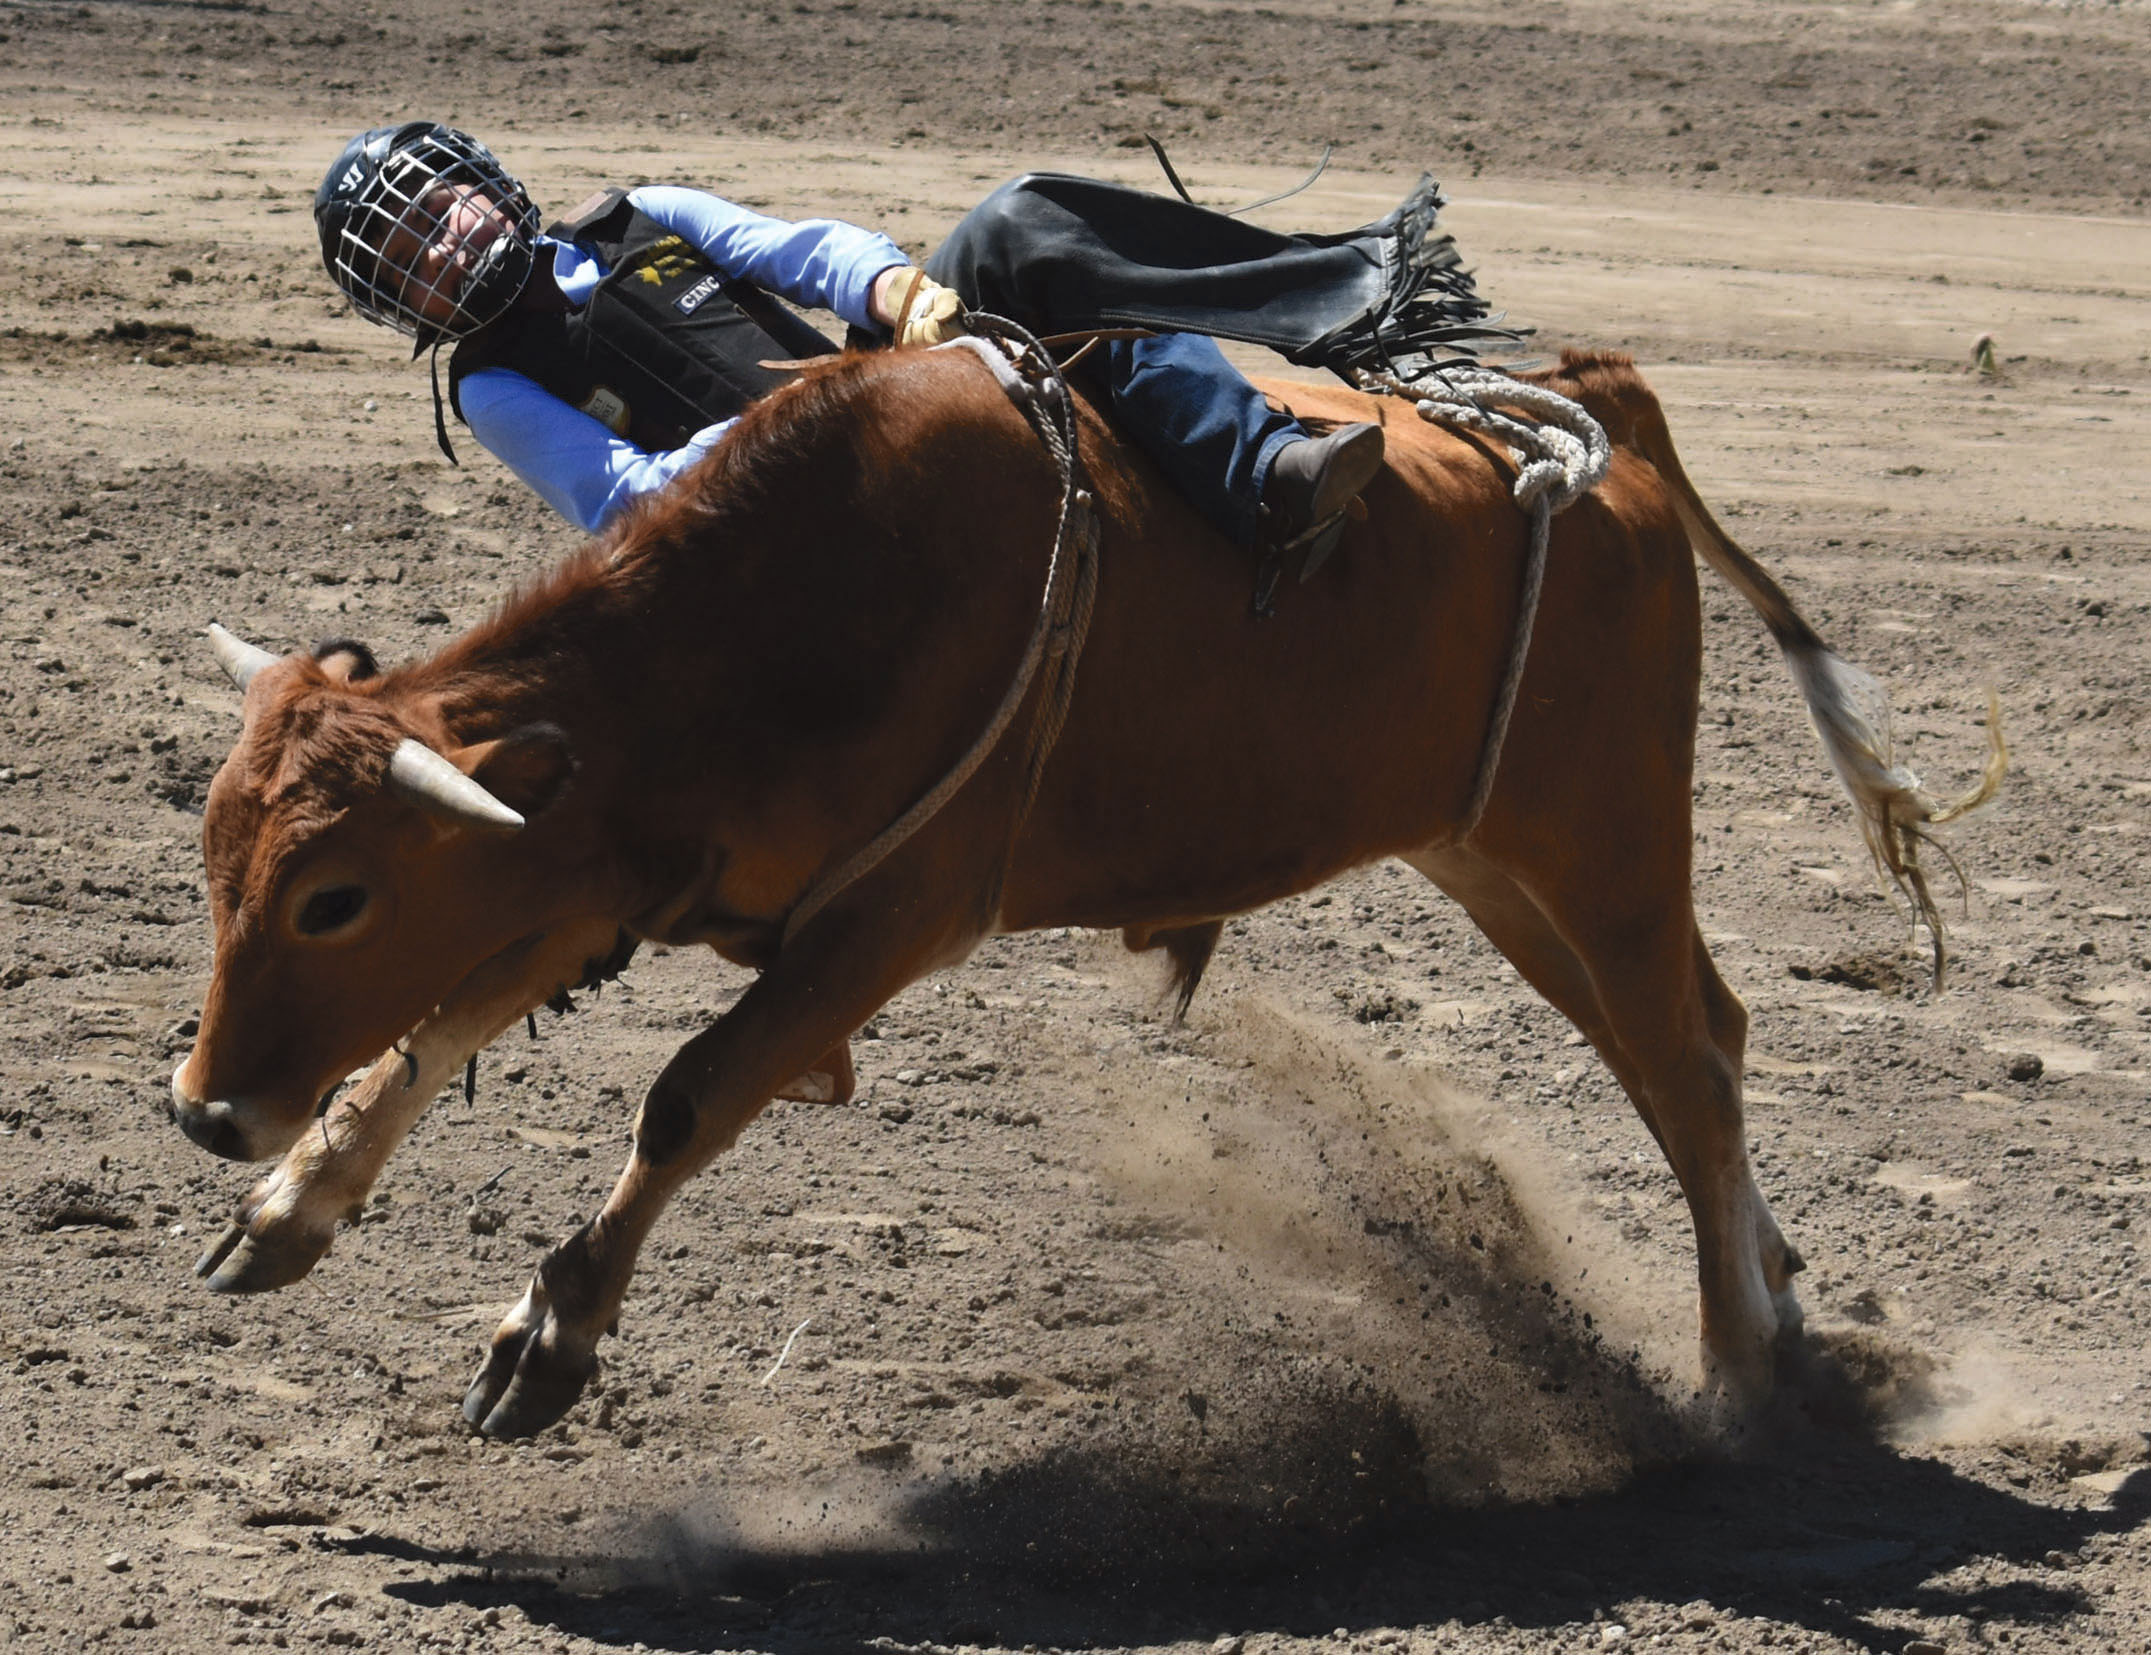 A cowgirl desperately holds onto her steer riding rope for dear life as a bucking steer attempts to throw her off. She was able to hold on for a few more seconds before the steer bucked her off and knocked the wind out of her.